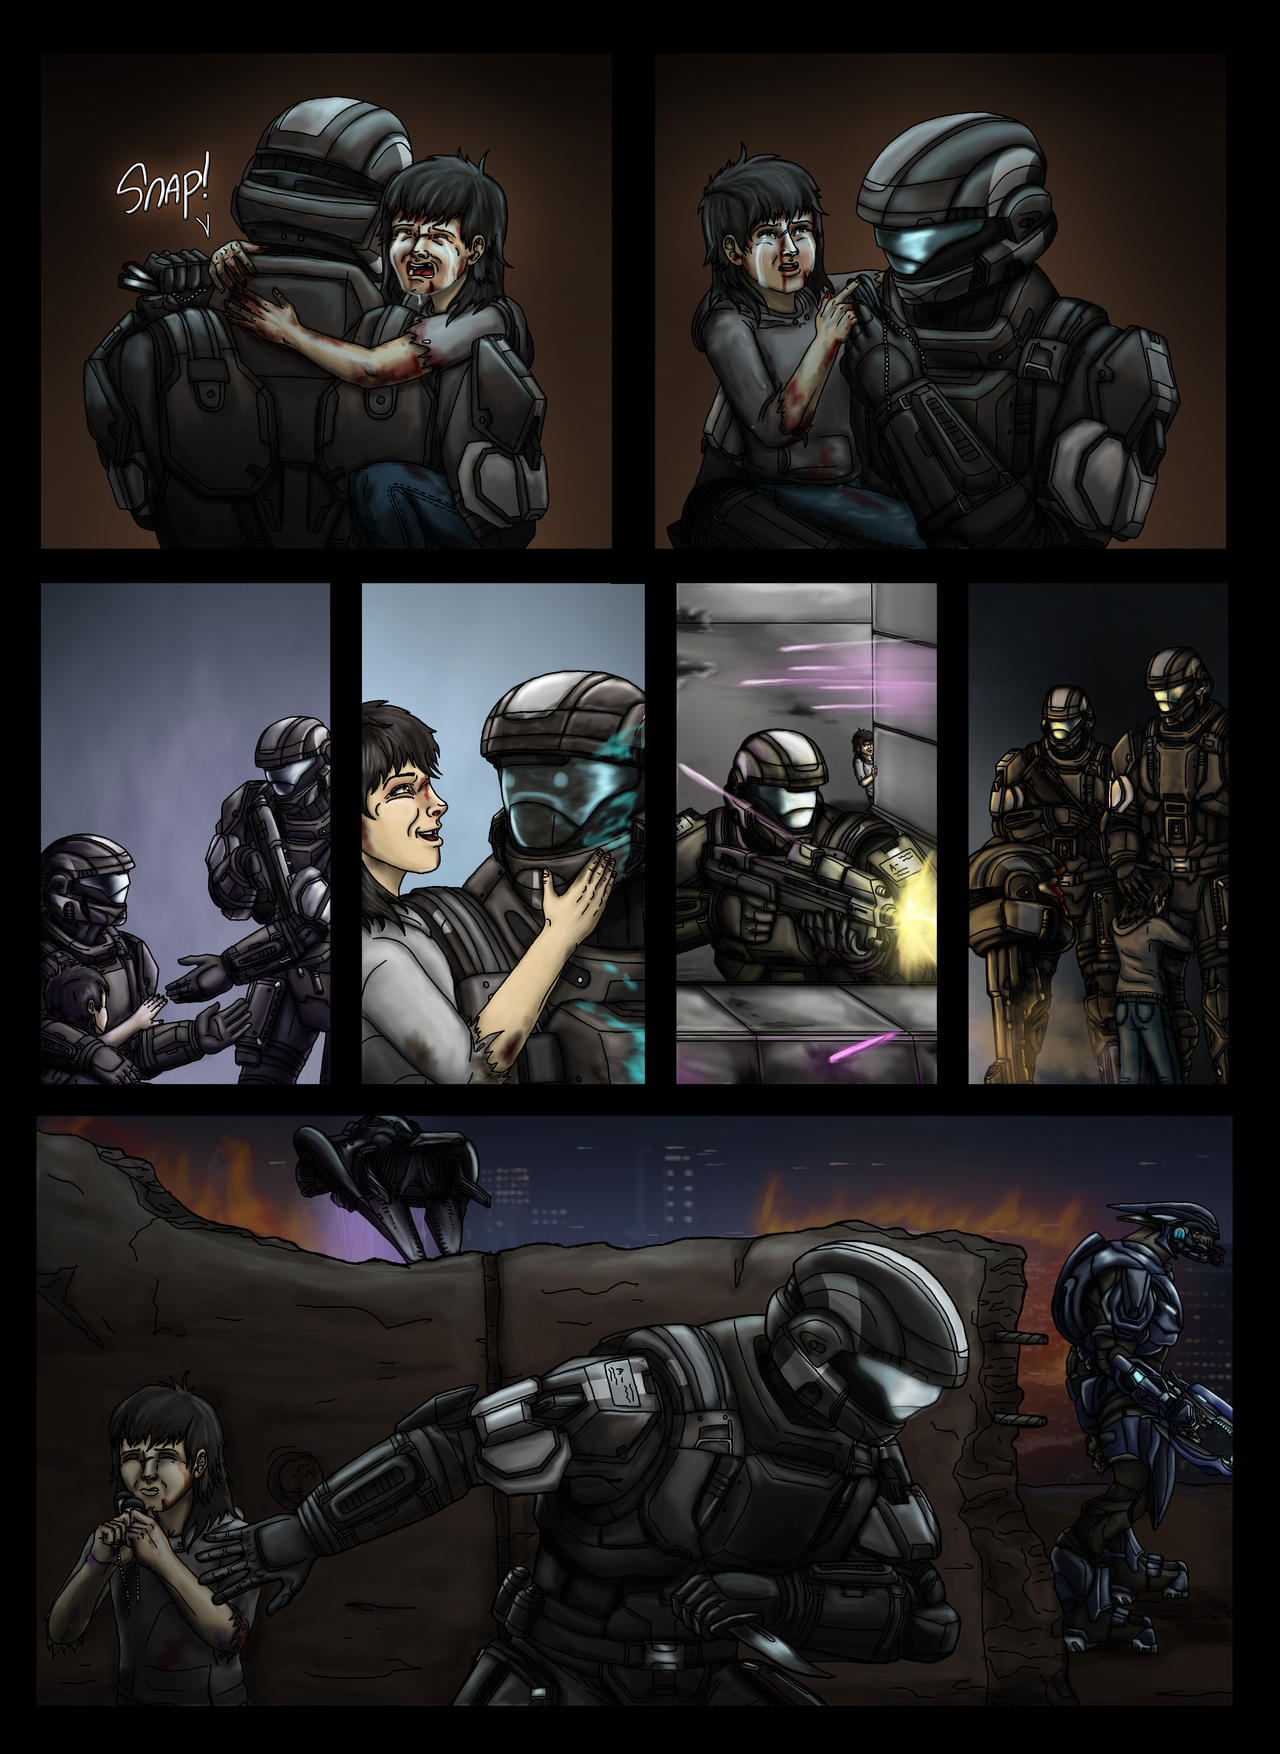 halo__dogtag_origins_page_4_by_guyver89-